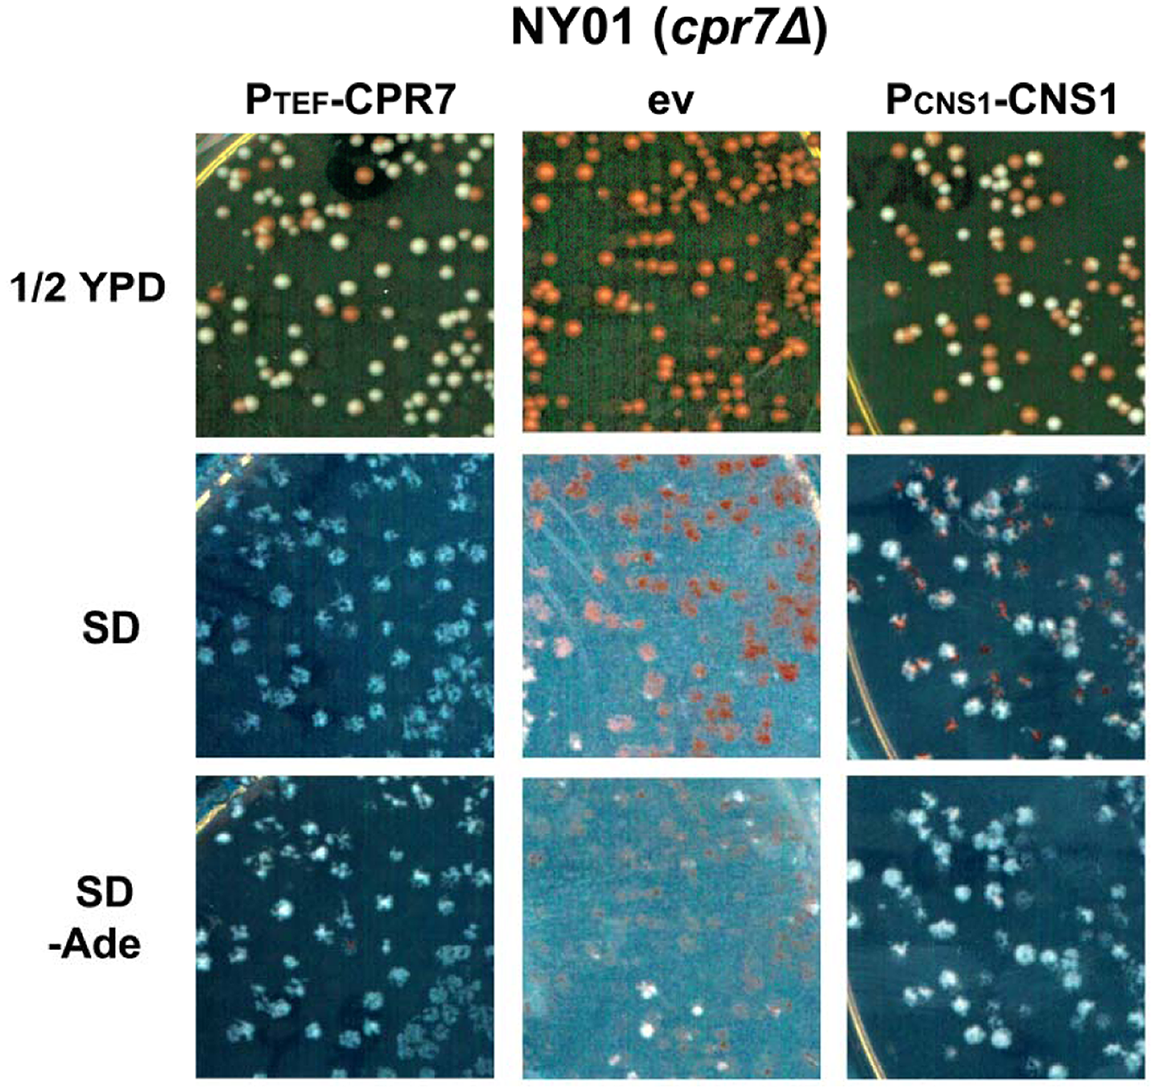 Cns1 complements Cpr7 function required for [URE3] stability.